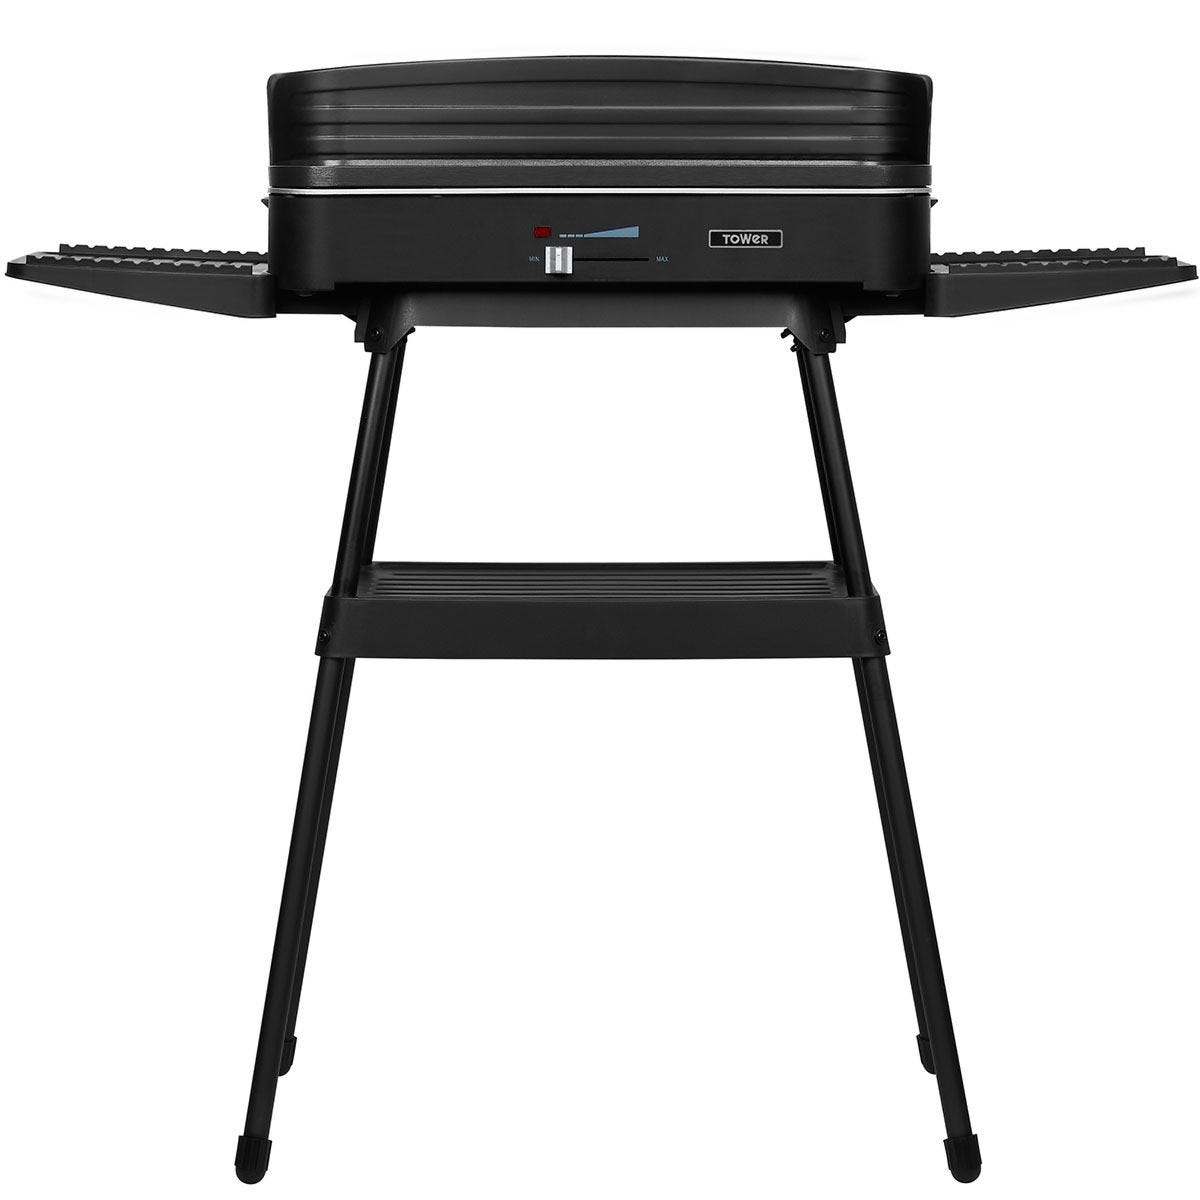 Tower T14028 Indoor and Outdoor 2200W BBQ Grill - Black